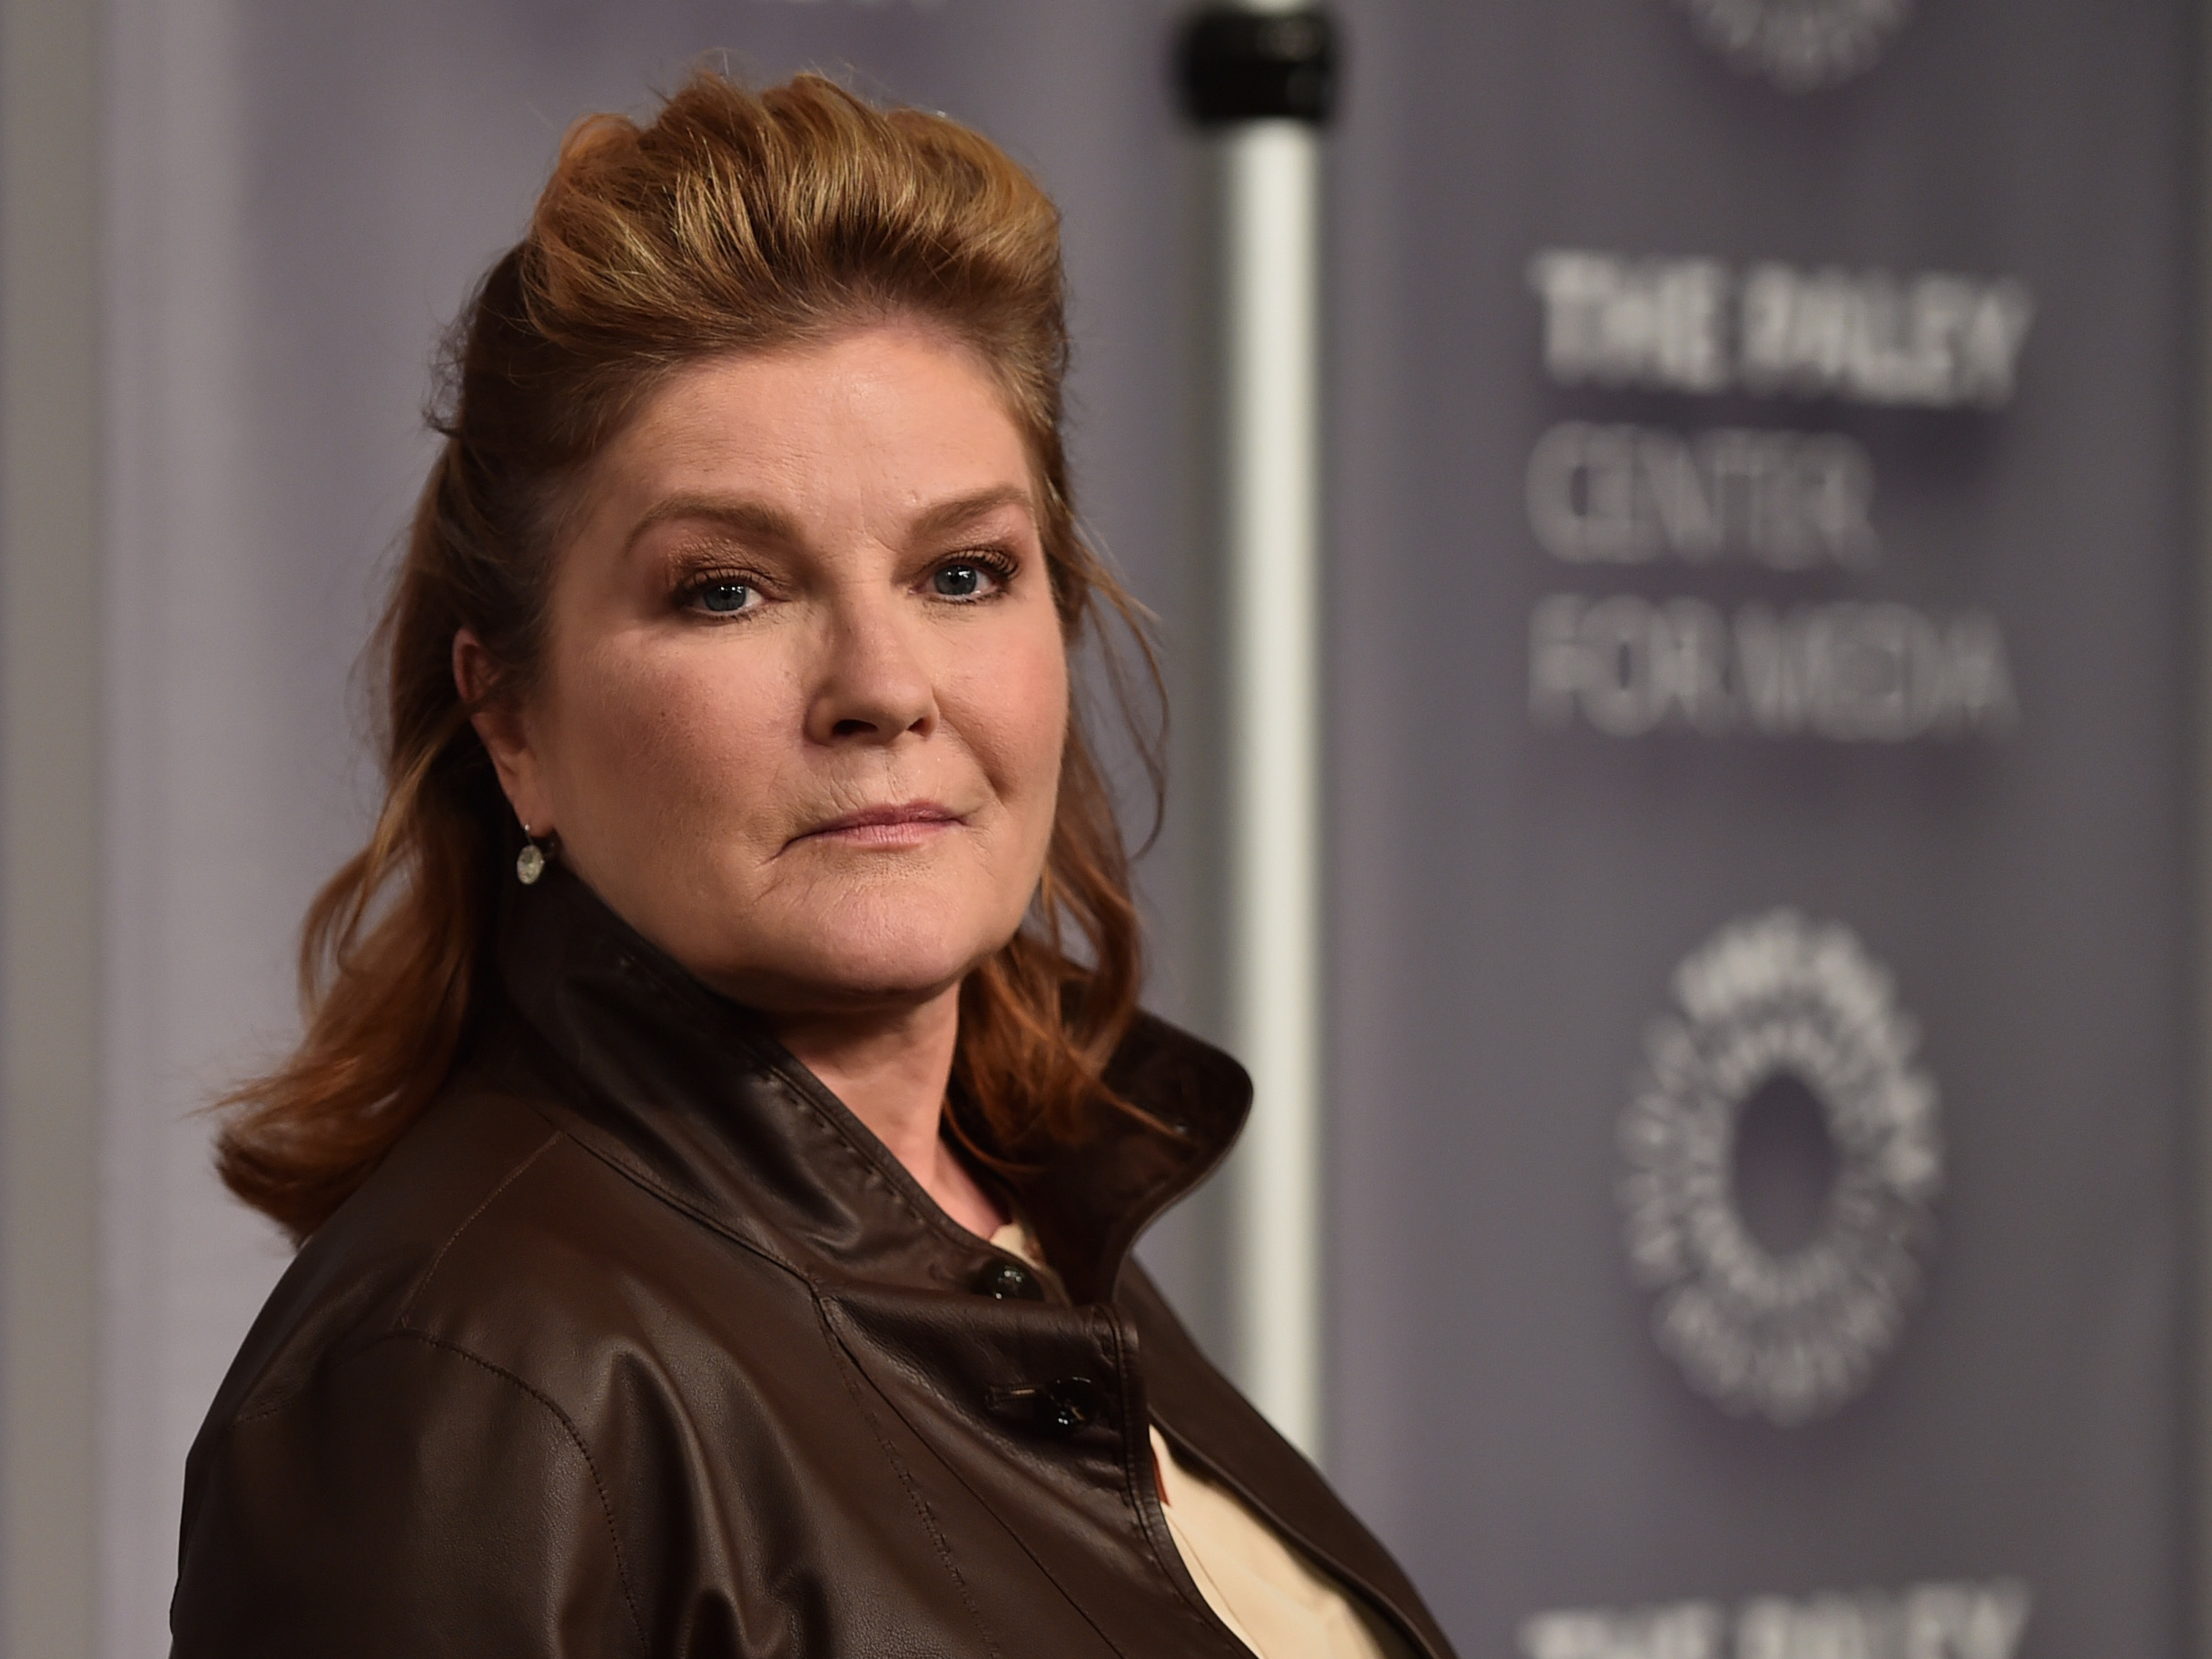 Not My Job: We Quiz Kate Mulgrew, 'Red' On 'Orange Is The New Black,' On Colors